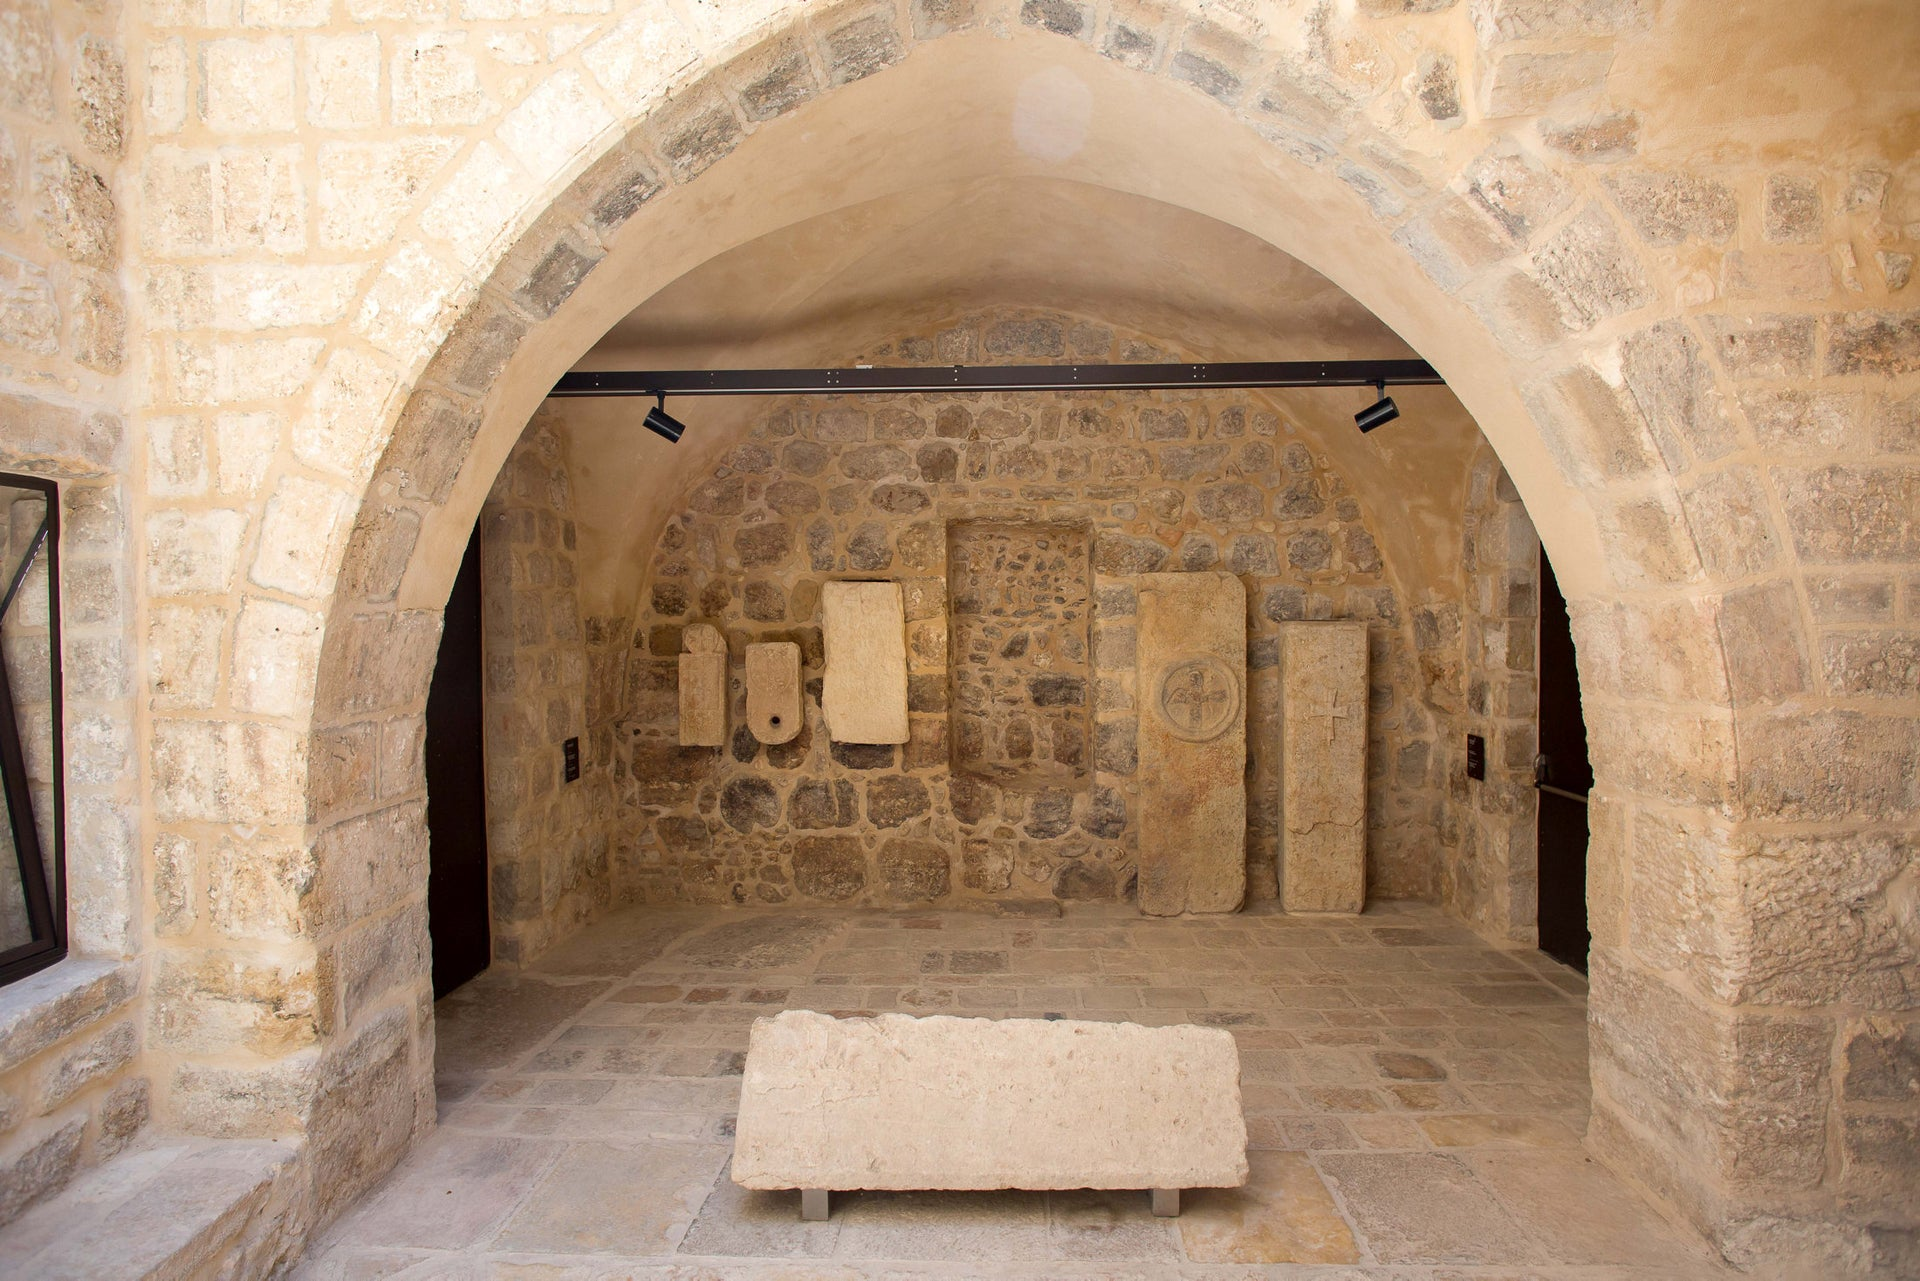 Parts of the museum date to the Byzantine era (about 1,500 years old) and the Crusader period (about 1,000 years ago).